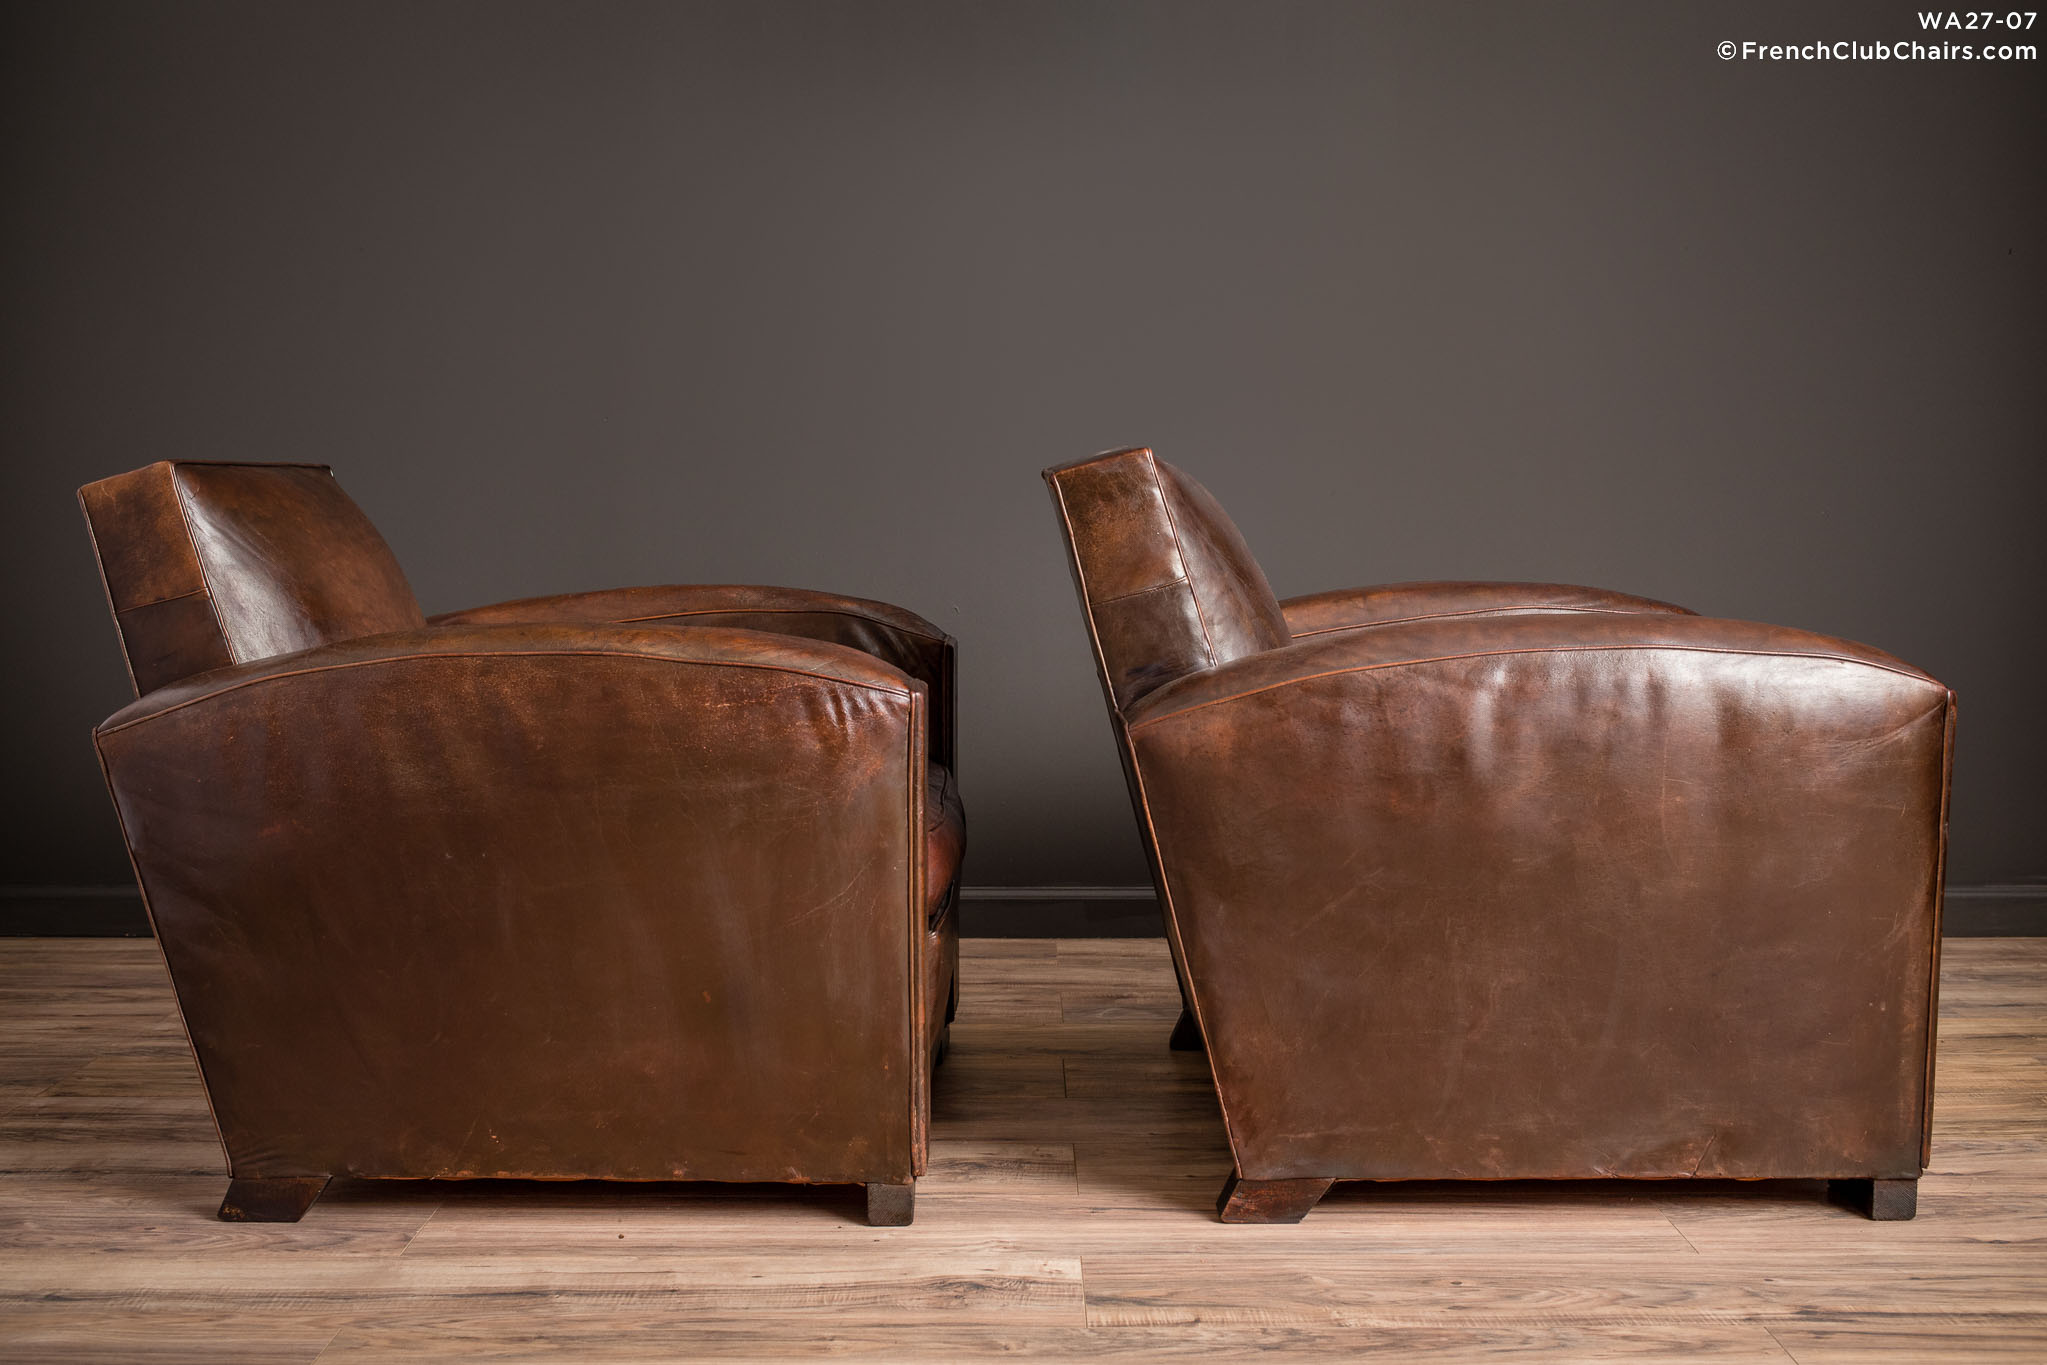 WA_27-07_La_Republic_Square_Lounge_Pair_R_3RT-v01-williams-antiks-leather-french-club-chair-wa_fcccom